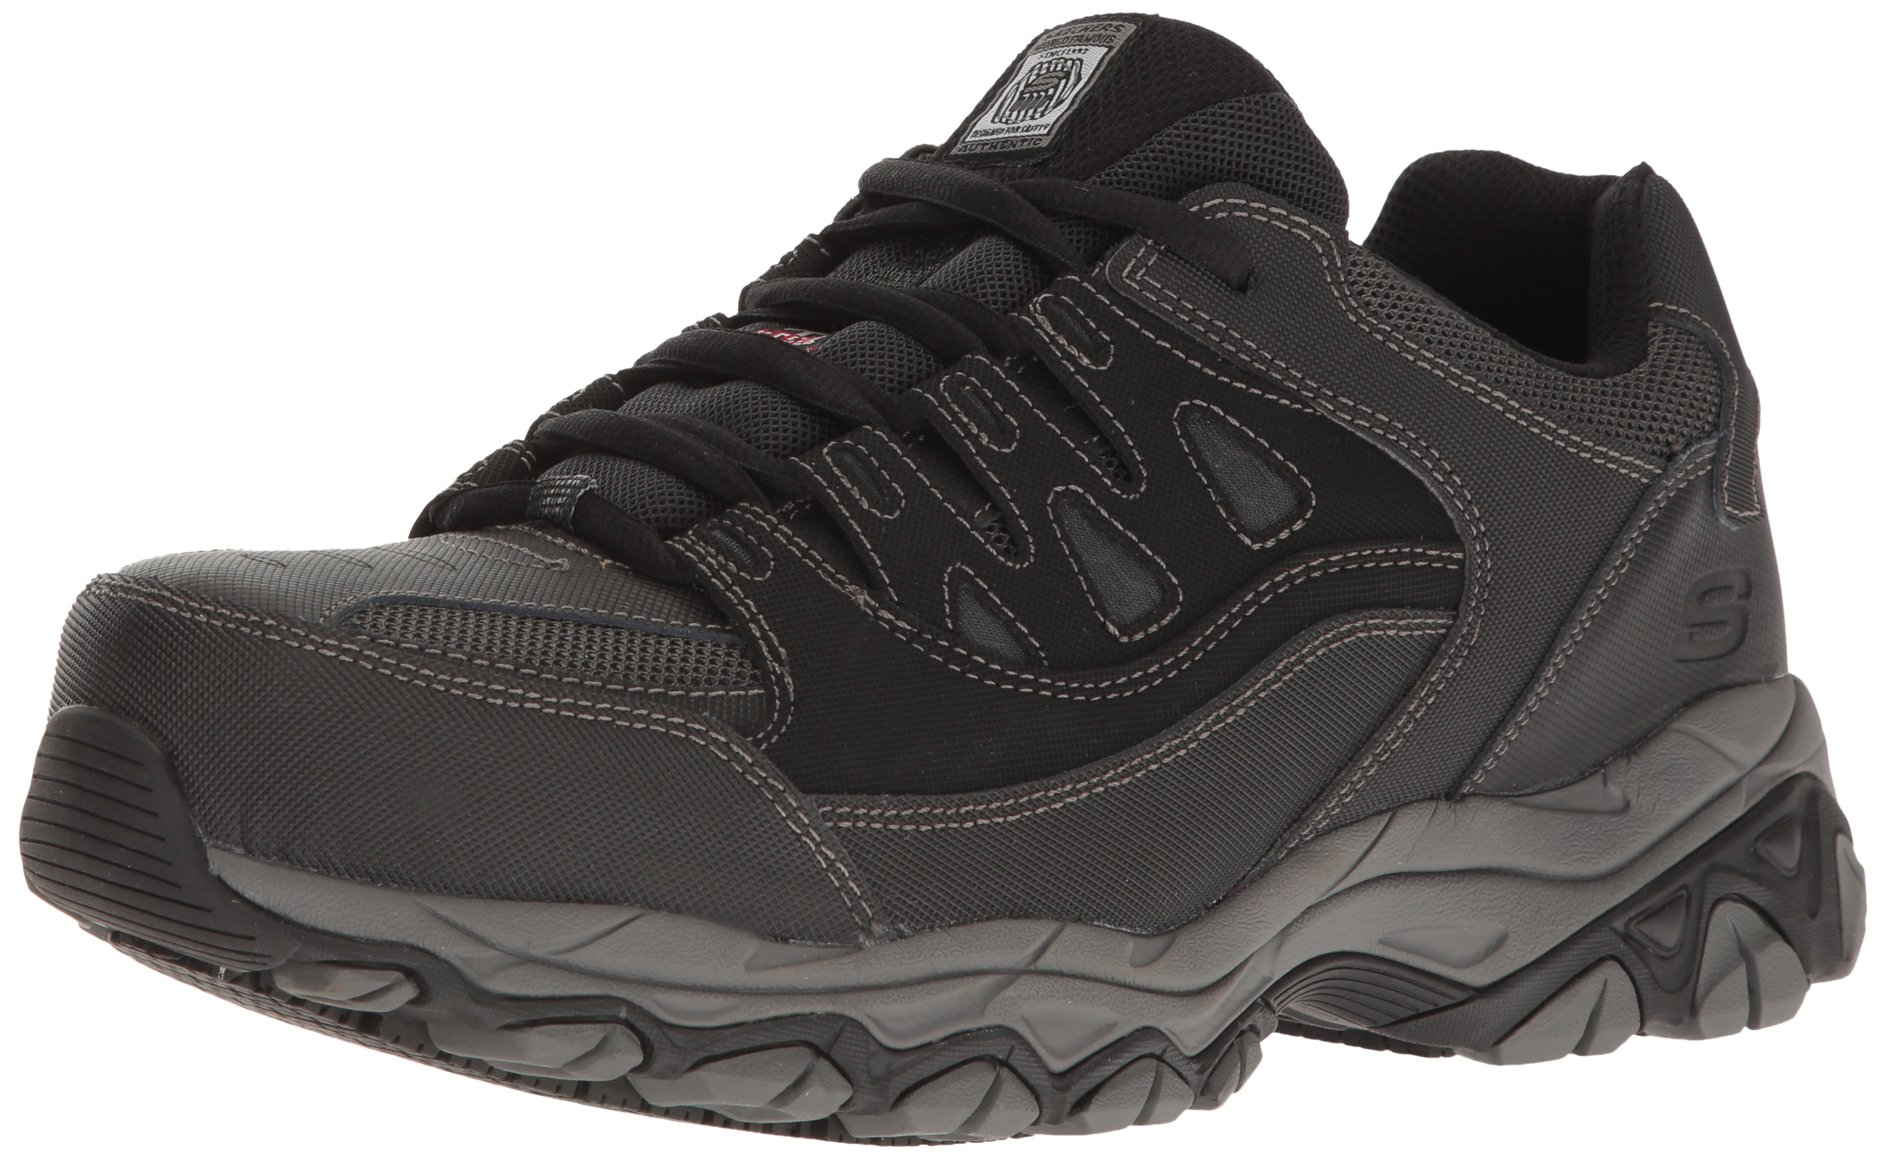 Skechers for Work Men's Holdredge Work Shoe, Black, 10 M US by Skechers